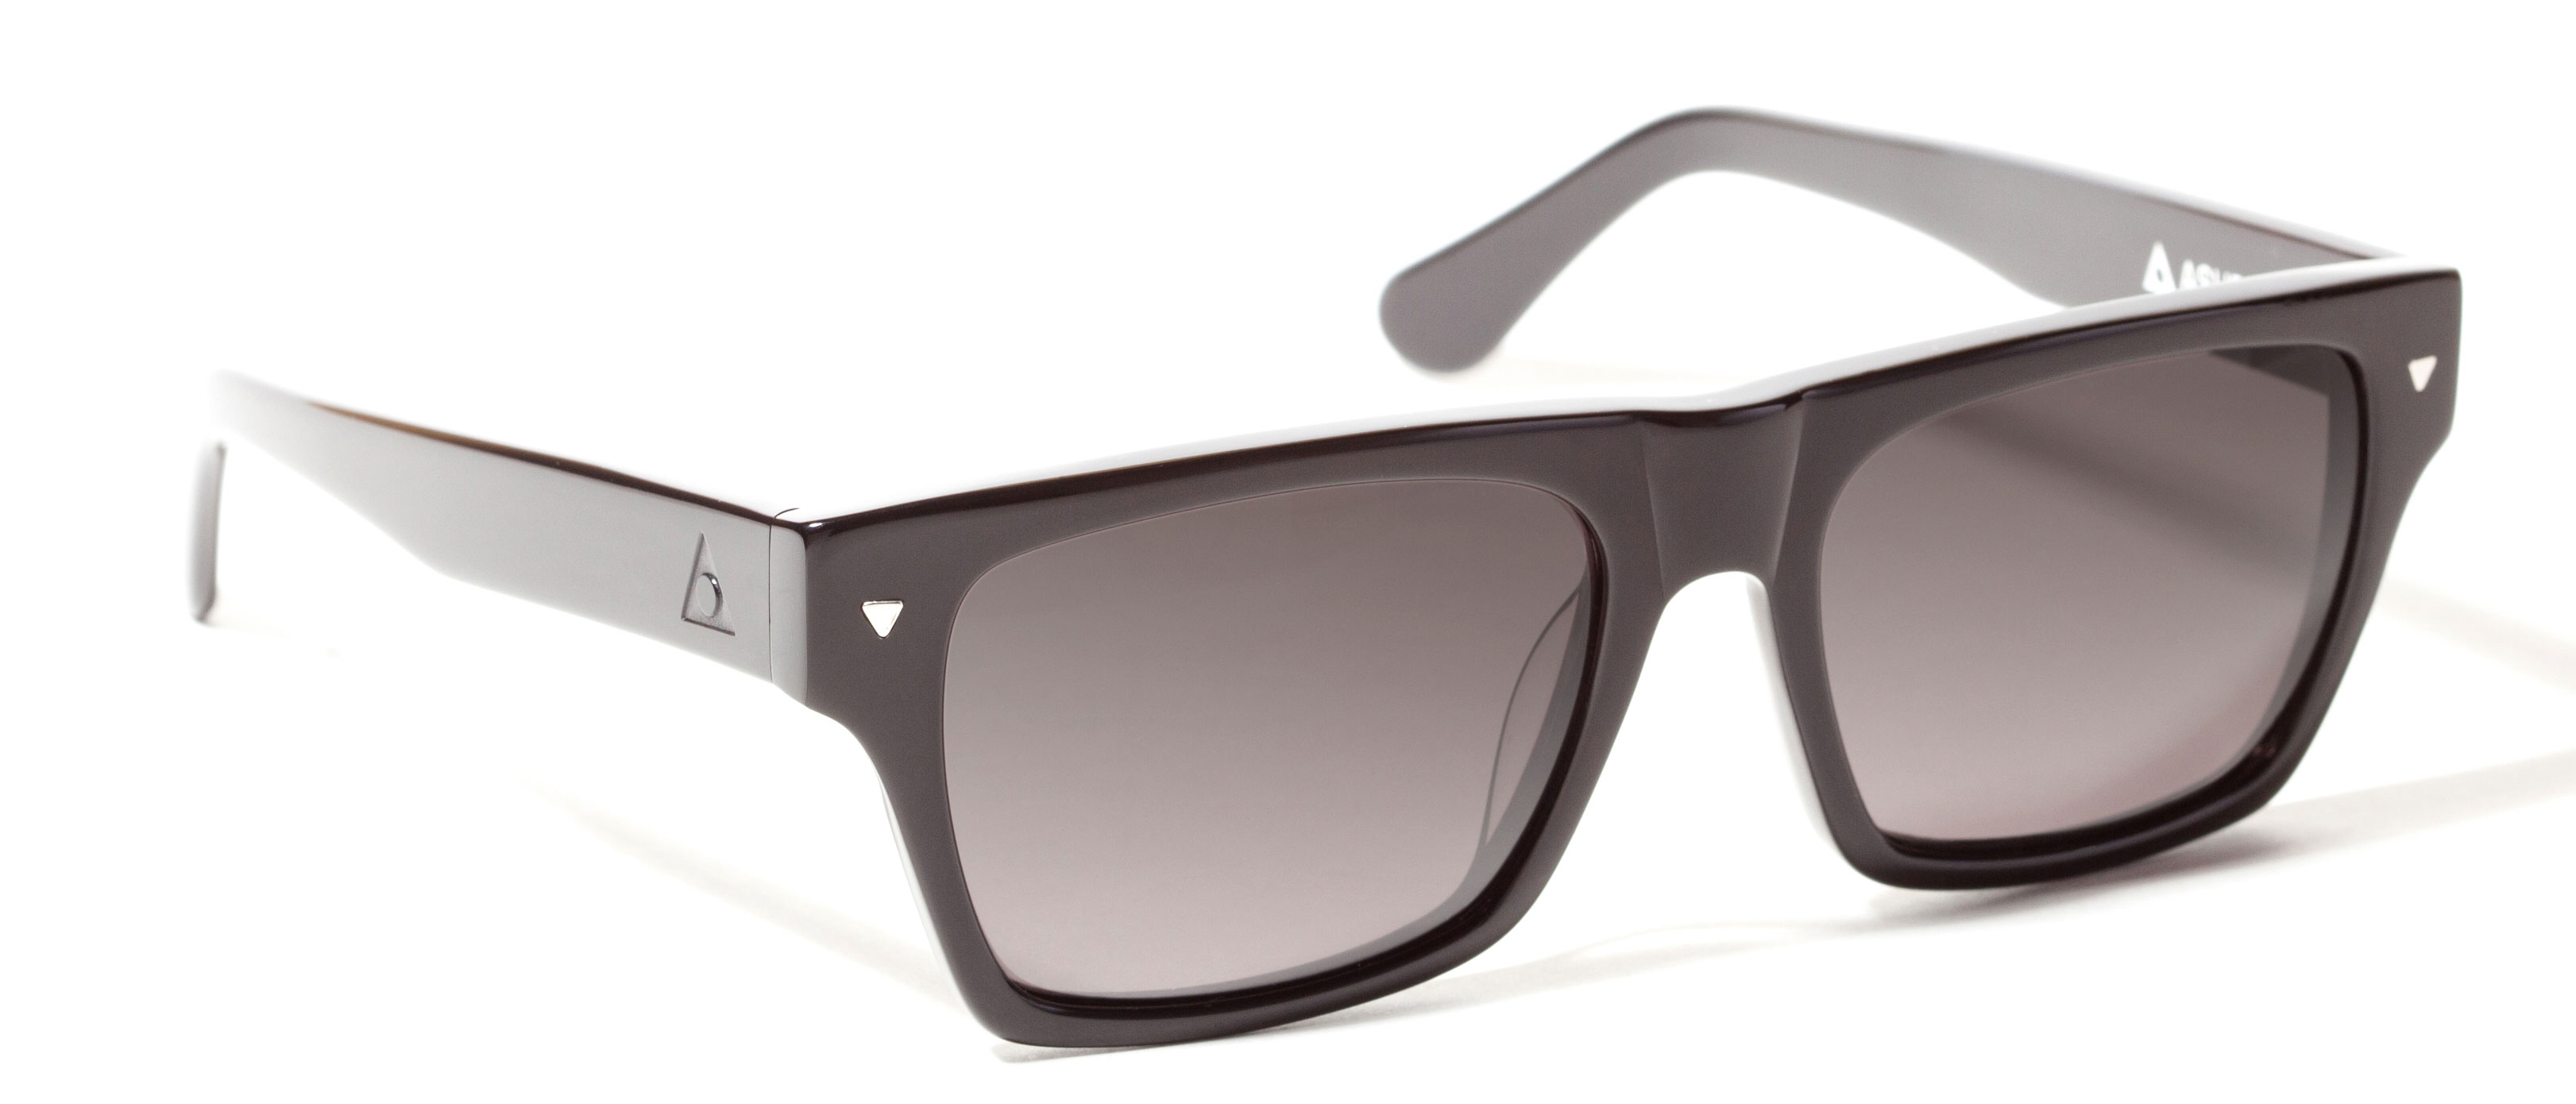 Entertainment Key Features of the Ashbury Diego Sunglasses: Carl Zeiss Cr-39 Lens Hand Crafted Acetate Frame Stainless Steel Optical Hinges 100% Uva & Uvb Protection Frame Measurements: 53 X 17.5 X 145 (Mm - Lens Width X Bridge Width X Temple Length) - $79.95